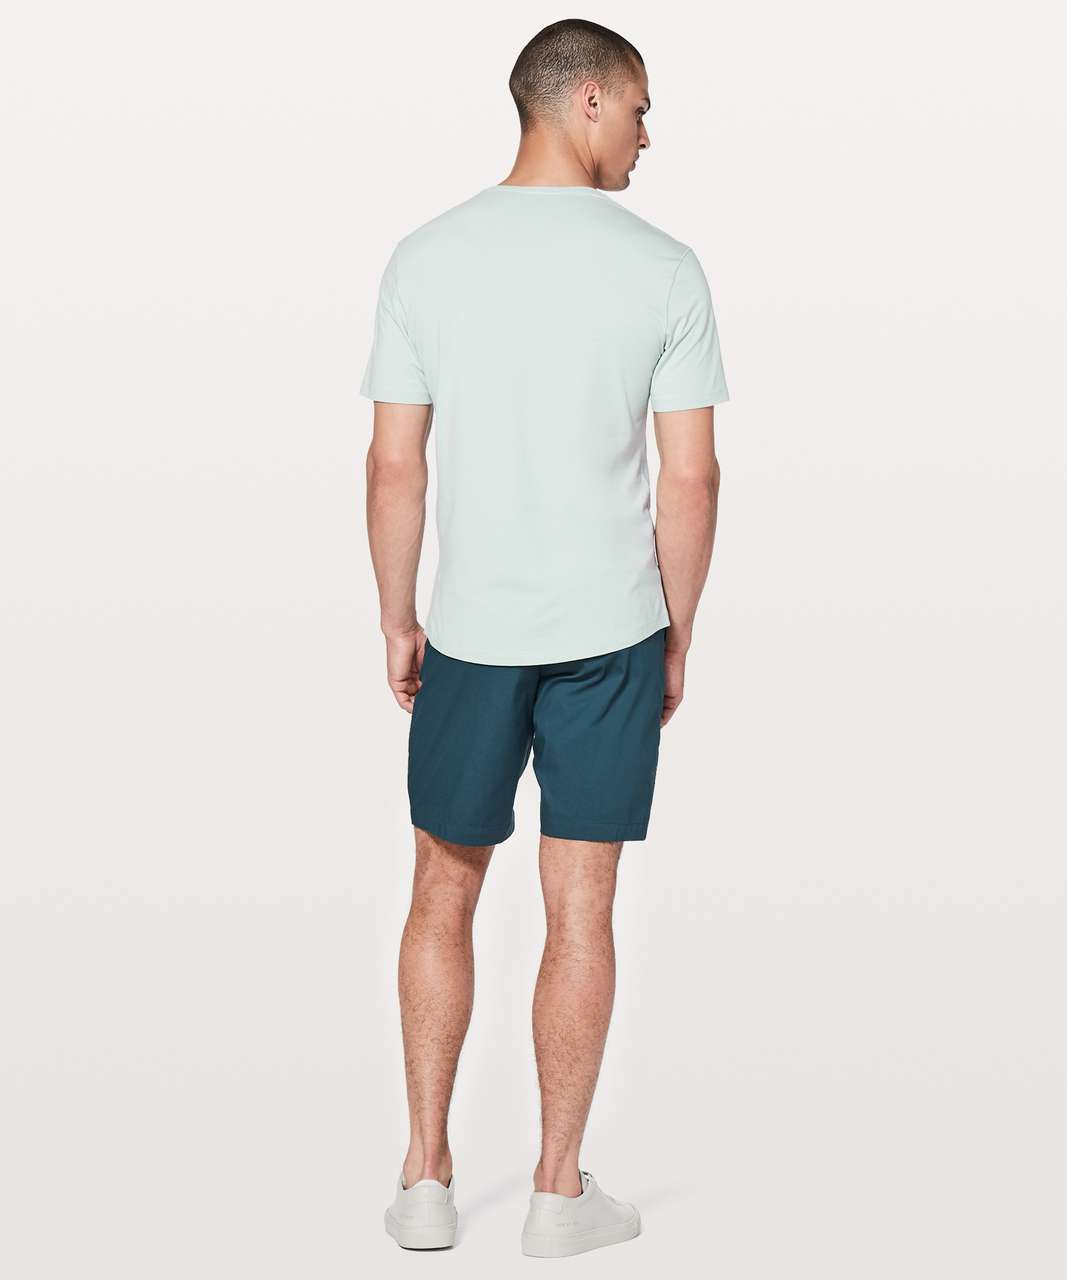 Lululemon 5 Year Basic V *Updated Fit - Pelican